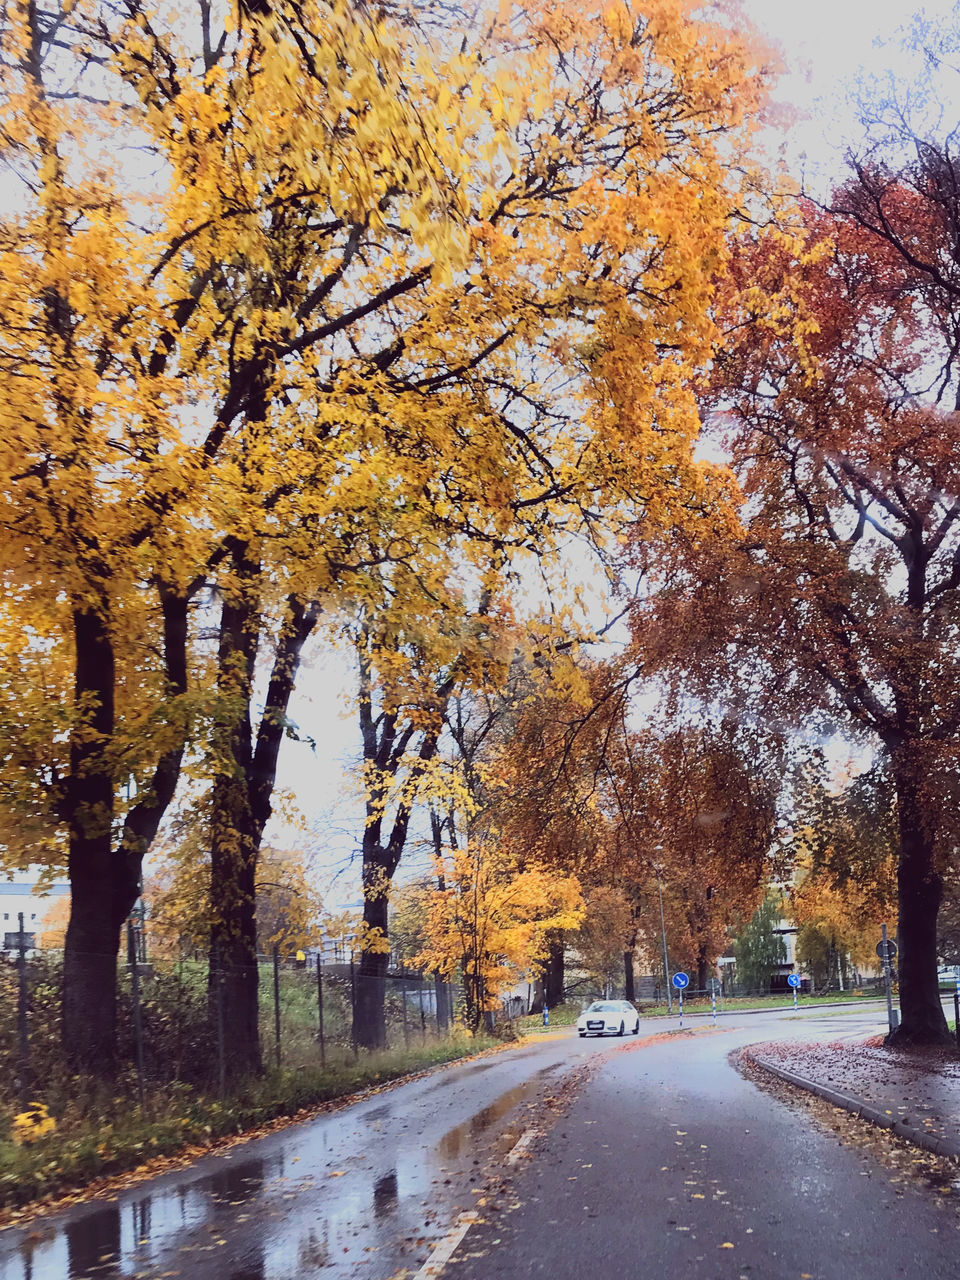 STREET AMIDST TREES DURING AUTUMN